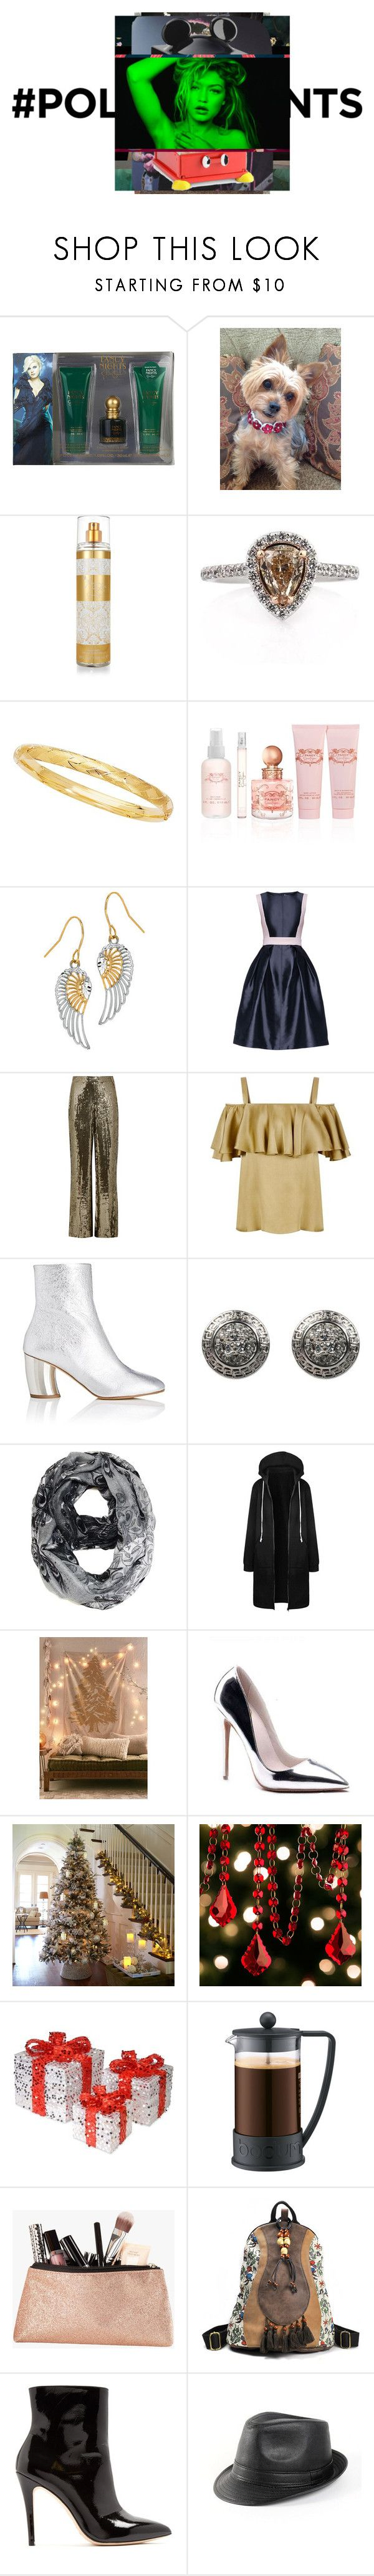 """#PolyPresents: Fancy Pants"" by knmaem on Polyvore featuring Jessica Simpson, Mark Broumand, BillyTheTree, Lattori, Alice + Olivia, Temperley London, Roksanda, Proenza Schouler, Versace and Urban Outfitters"